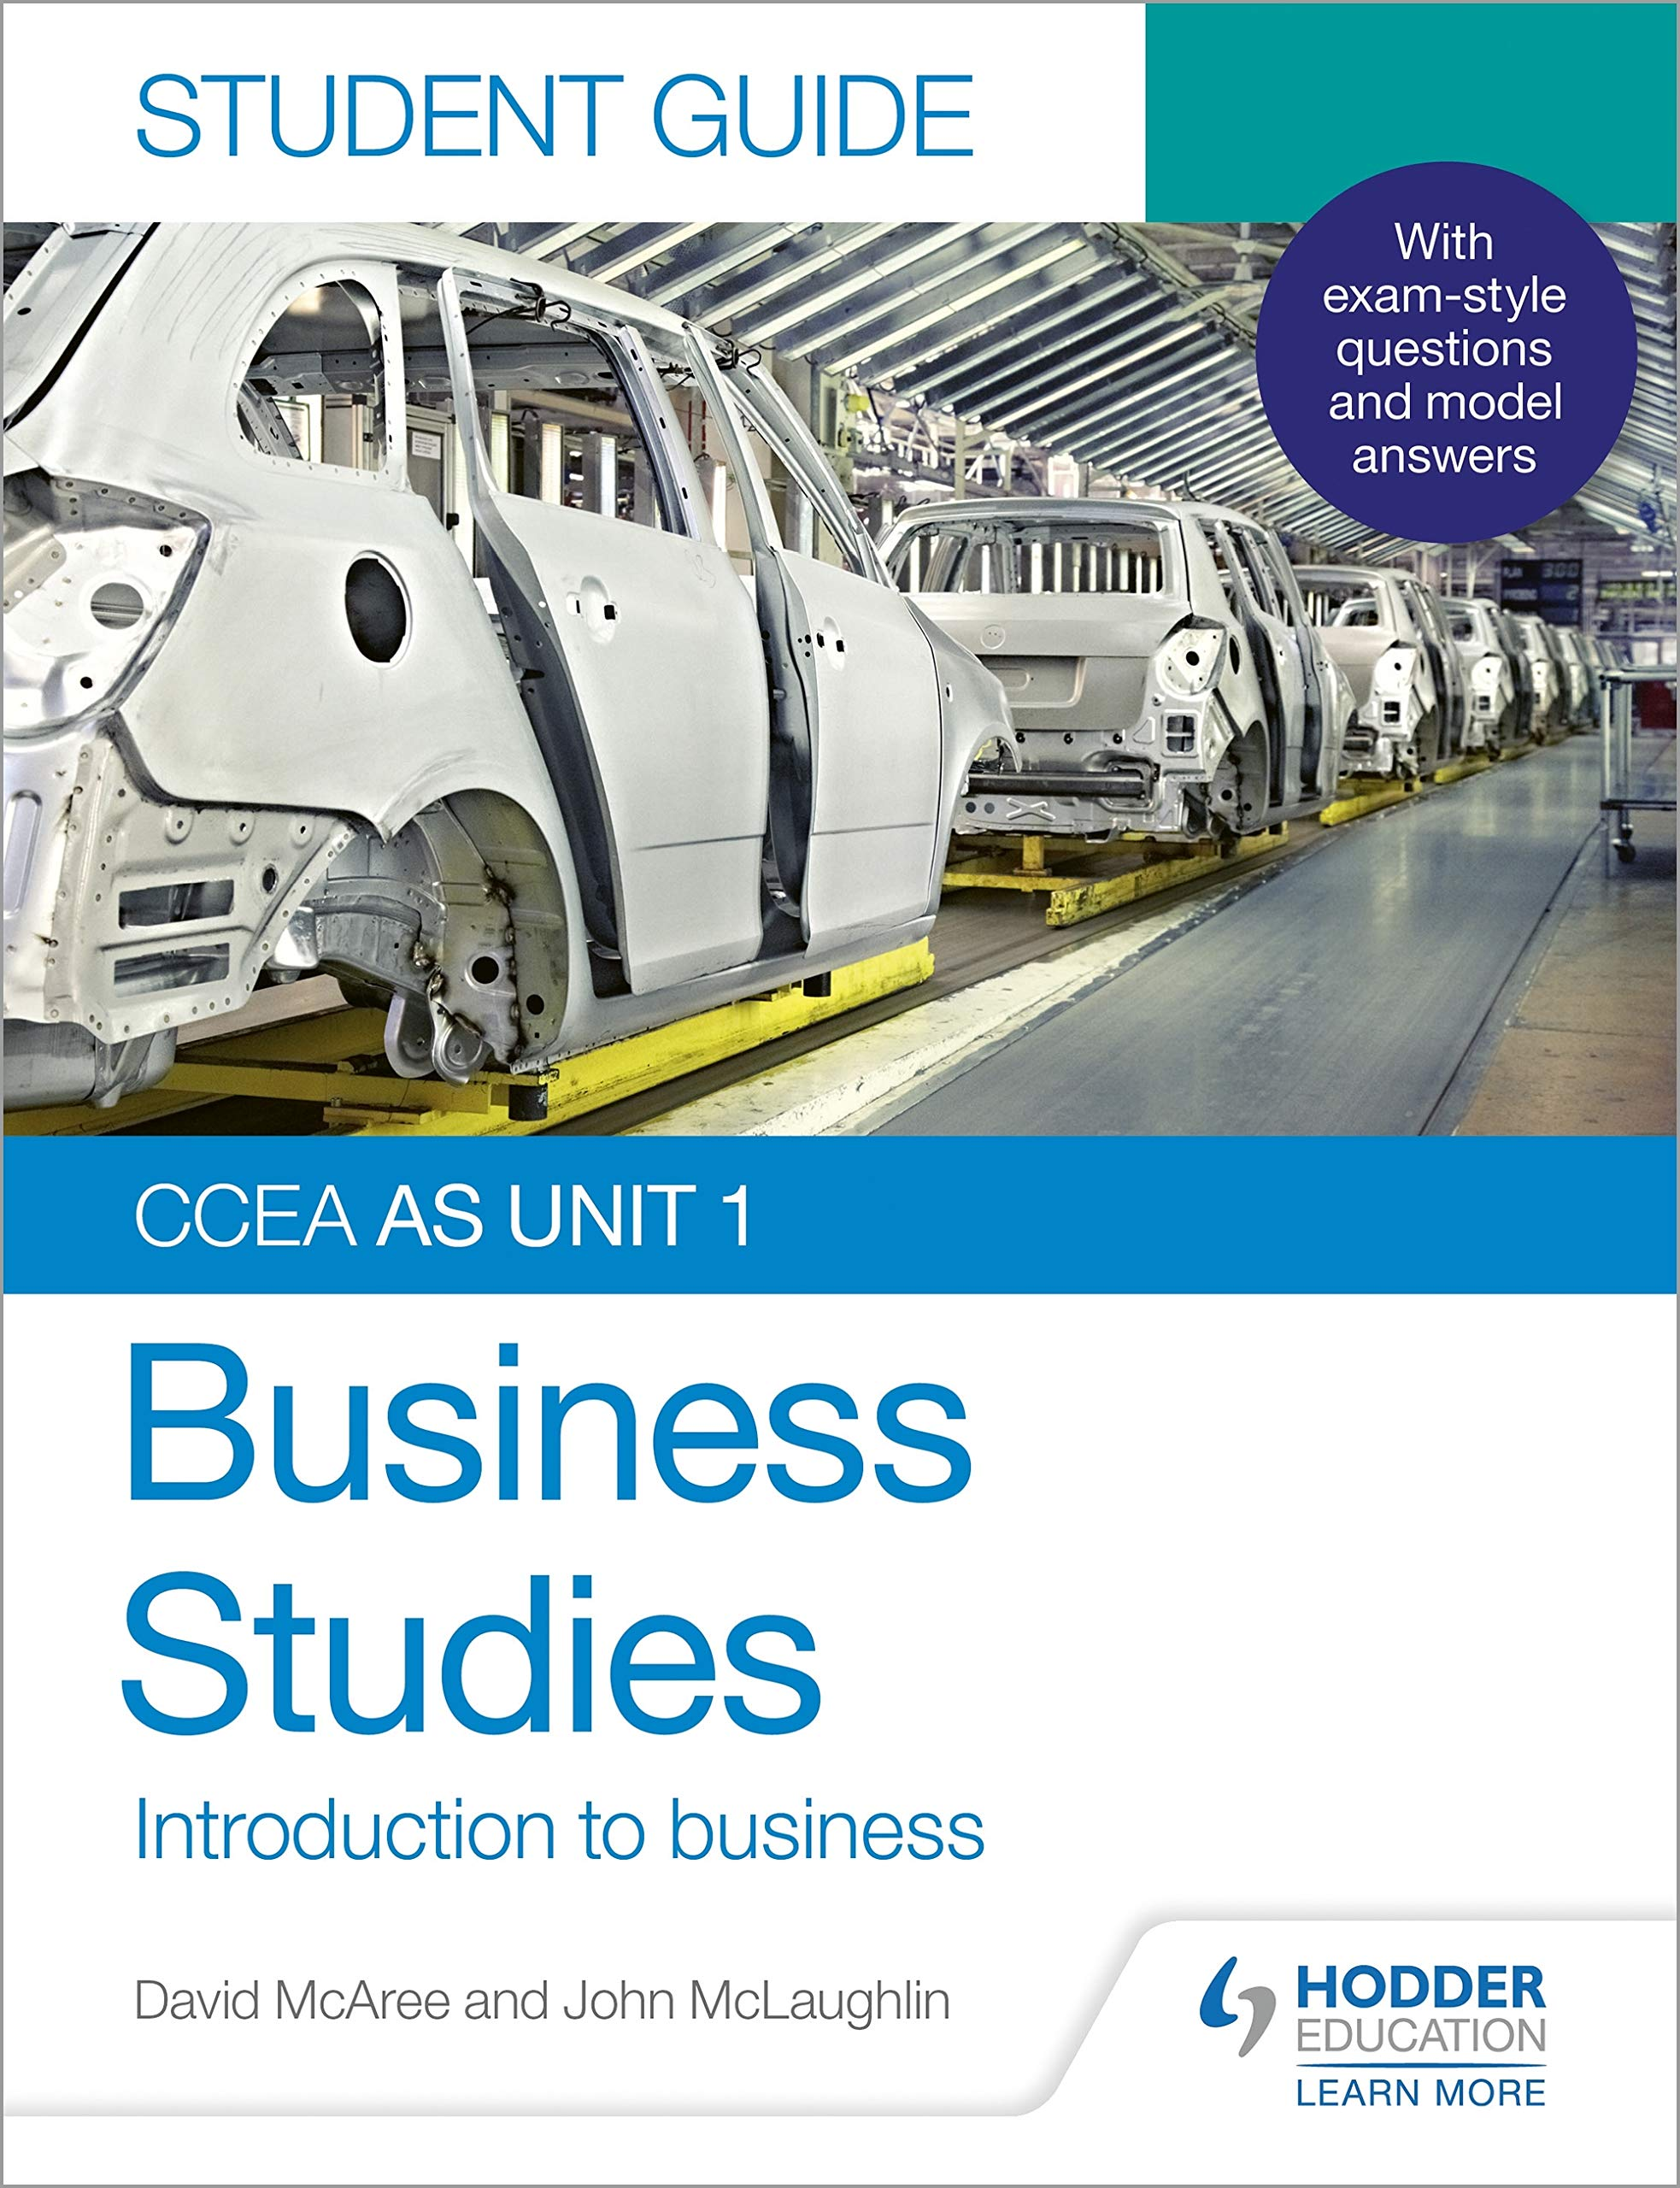 CCEA AS Unit 1 Business Studies Student Guide 1: Introduction to Business (Ccea As Unit 1 Student Guide 1)